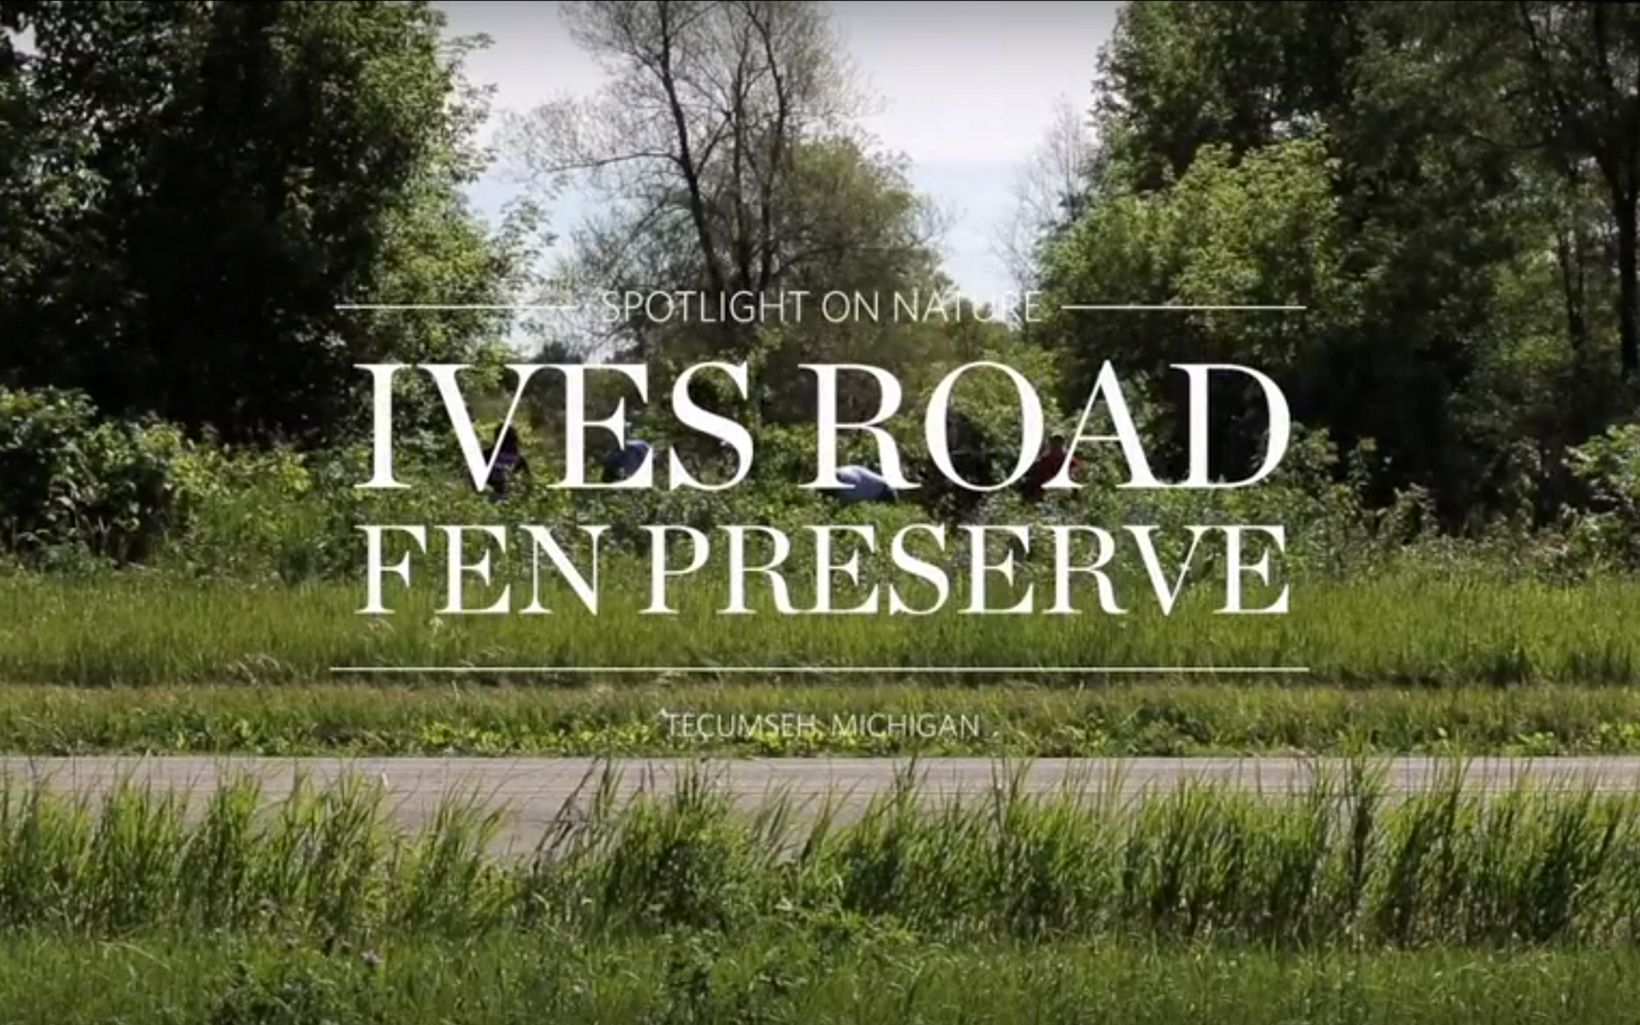 Title card for Spotlight on Nature: Ives Road Fen Preserve video